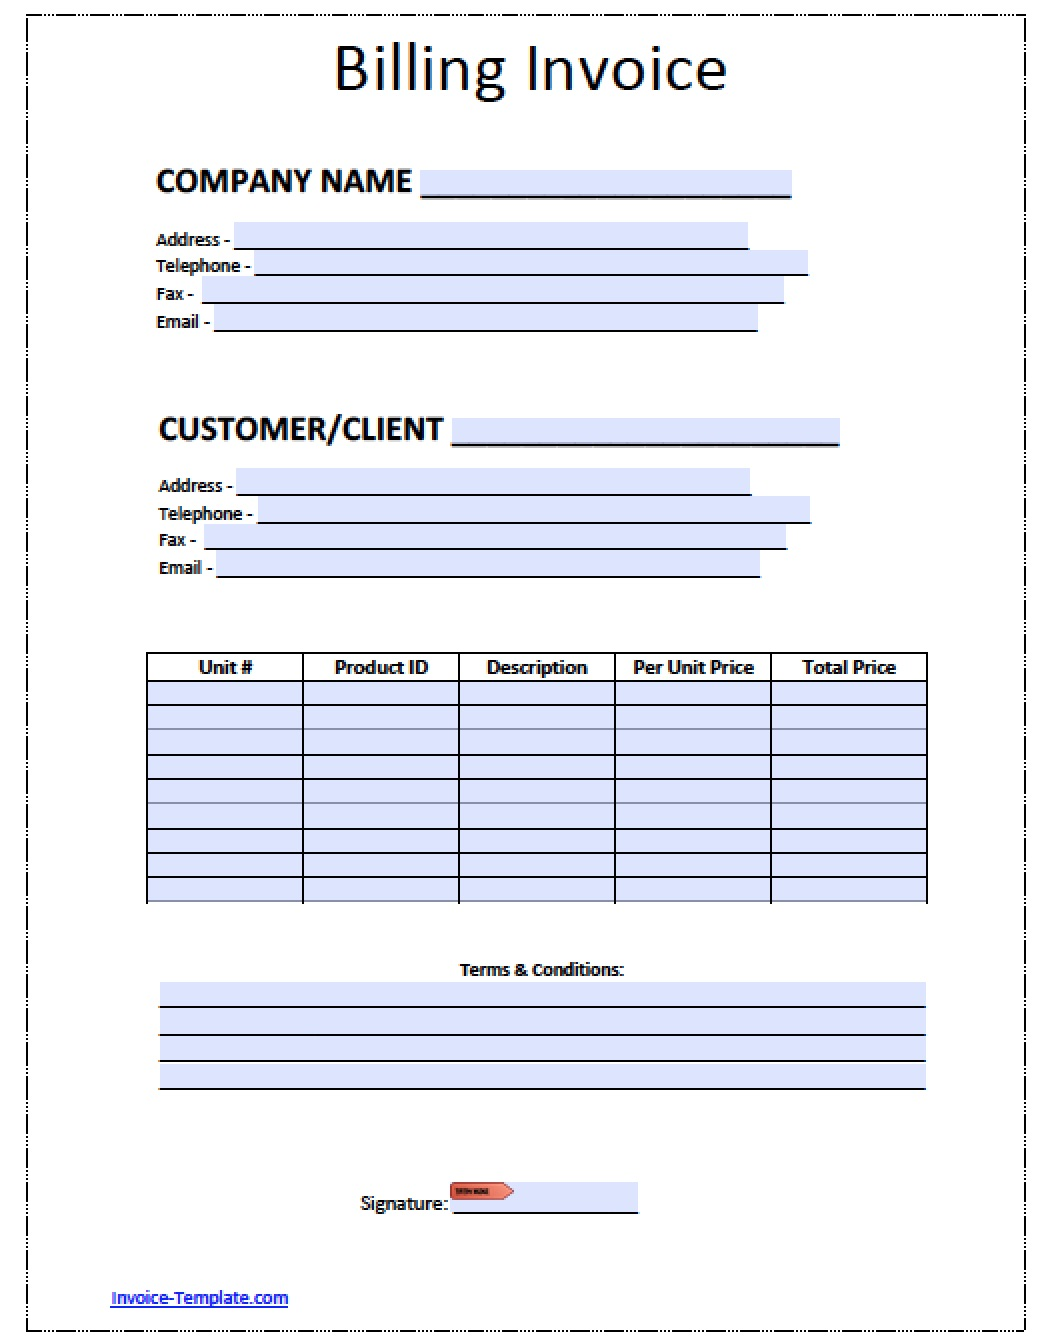 Free Billing Invoice Template Excel PDF Word Doc - Repair invoices template free best online jewelry store